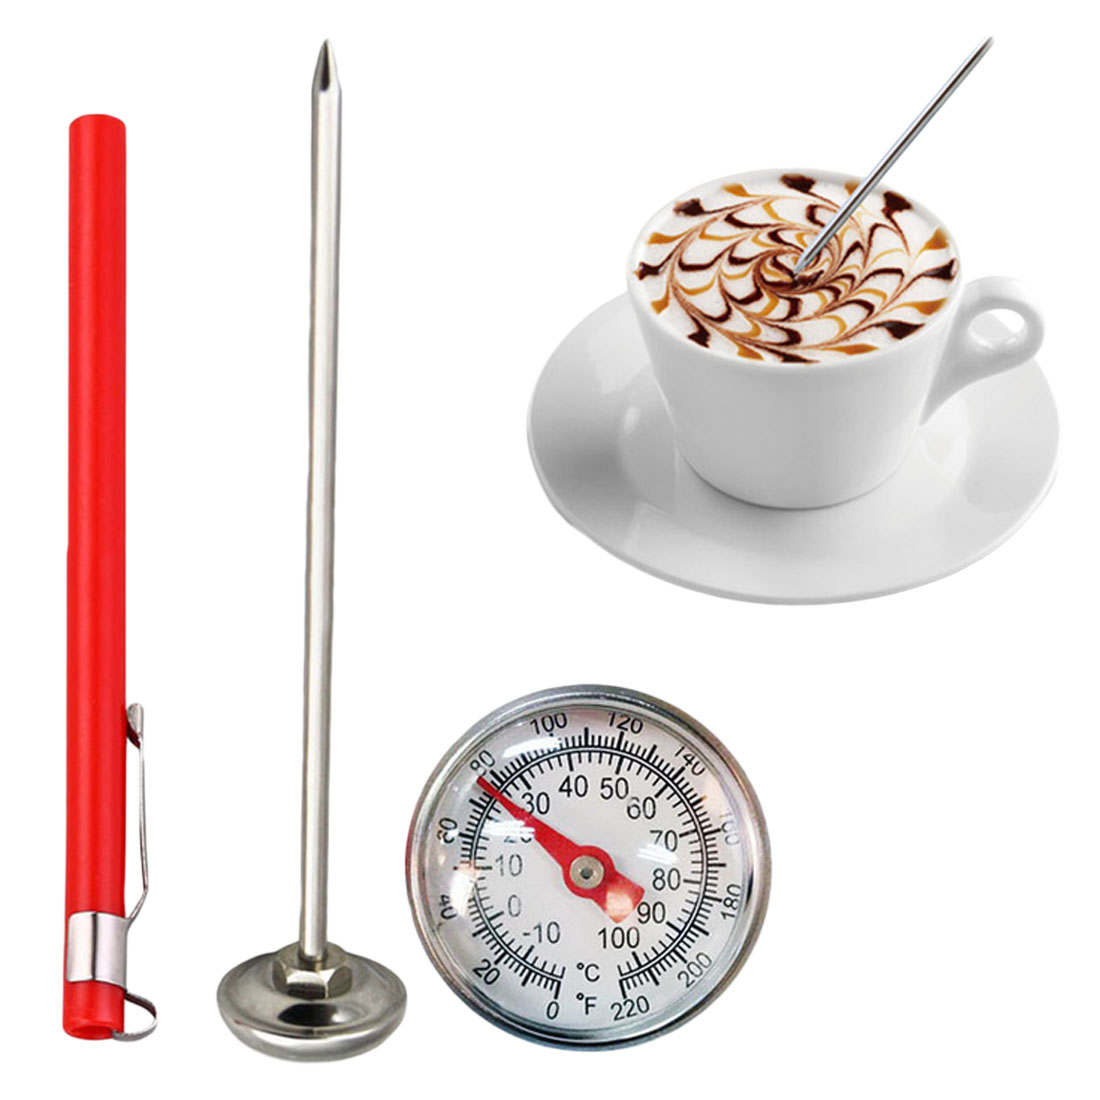 -10C To 100C Meat Thermometer Kitchen Stainless Steel Oven Cooking BBQ Probe Thermometer Food Meat Gauge Cooking Tools